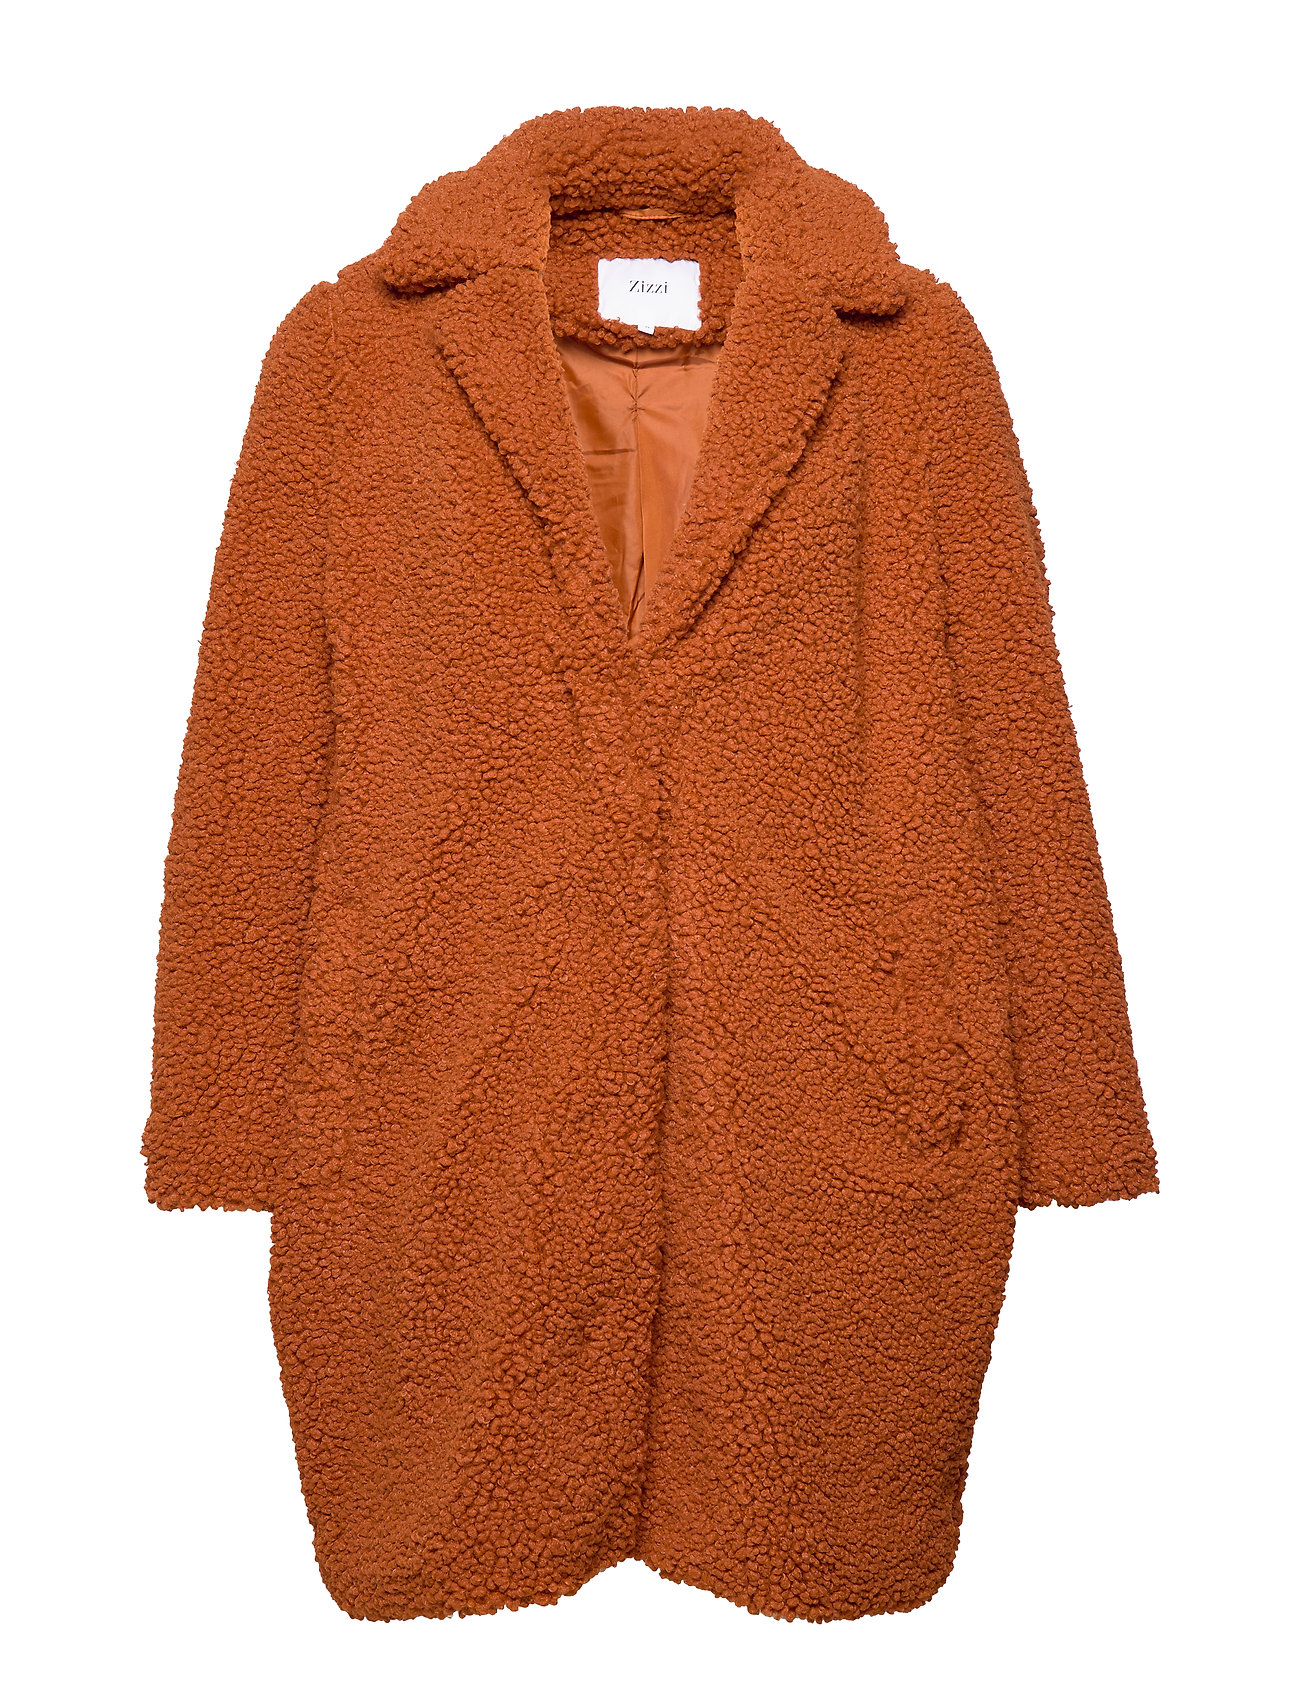 Zizzi MTEDDY, L/S, COAT - GINGER BREAD